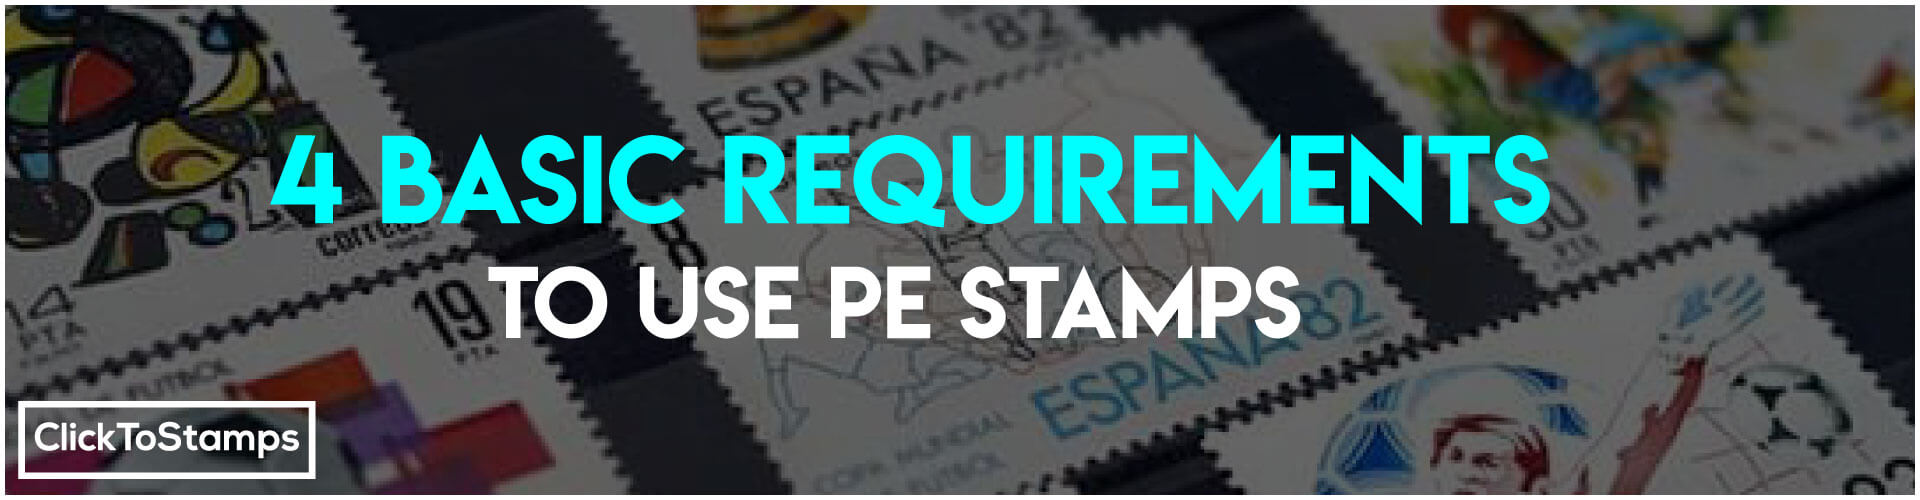 4-Basic-Requirements-to-use-PE-stamp